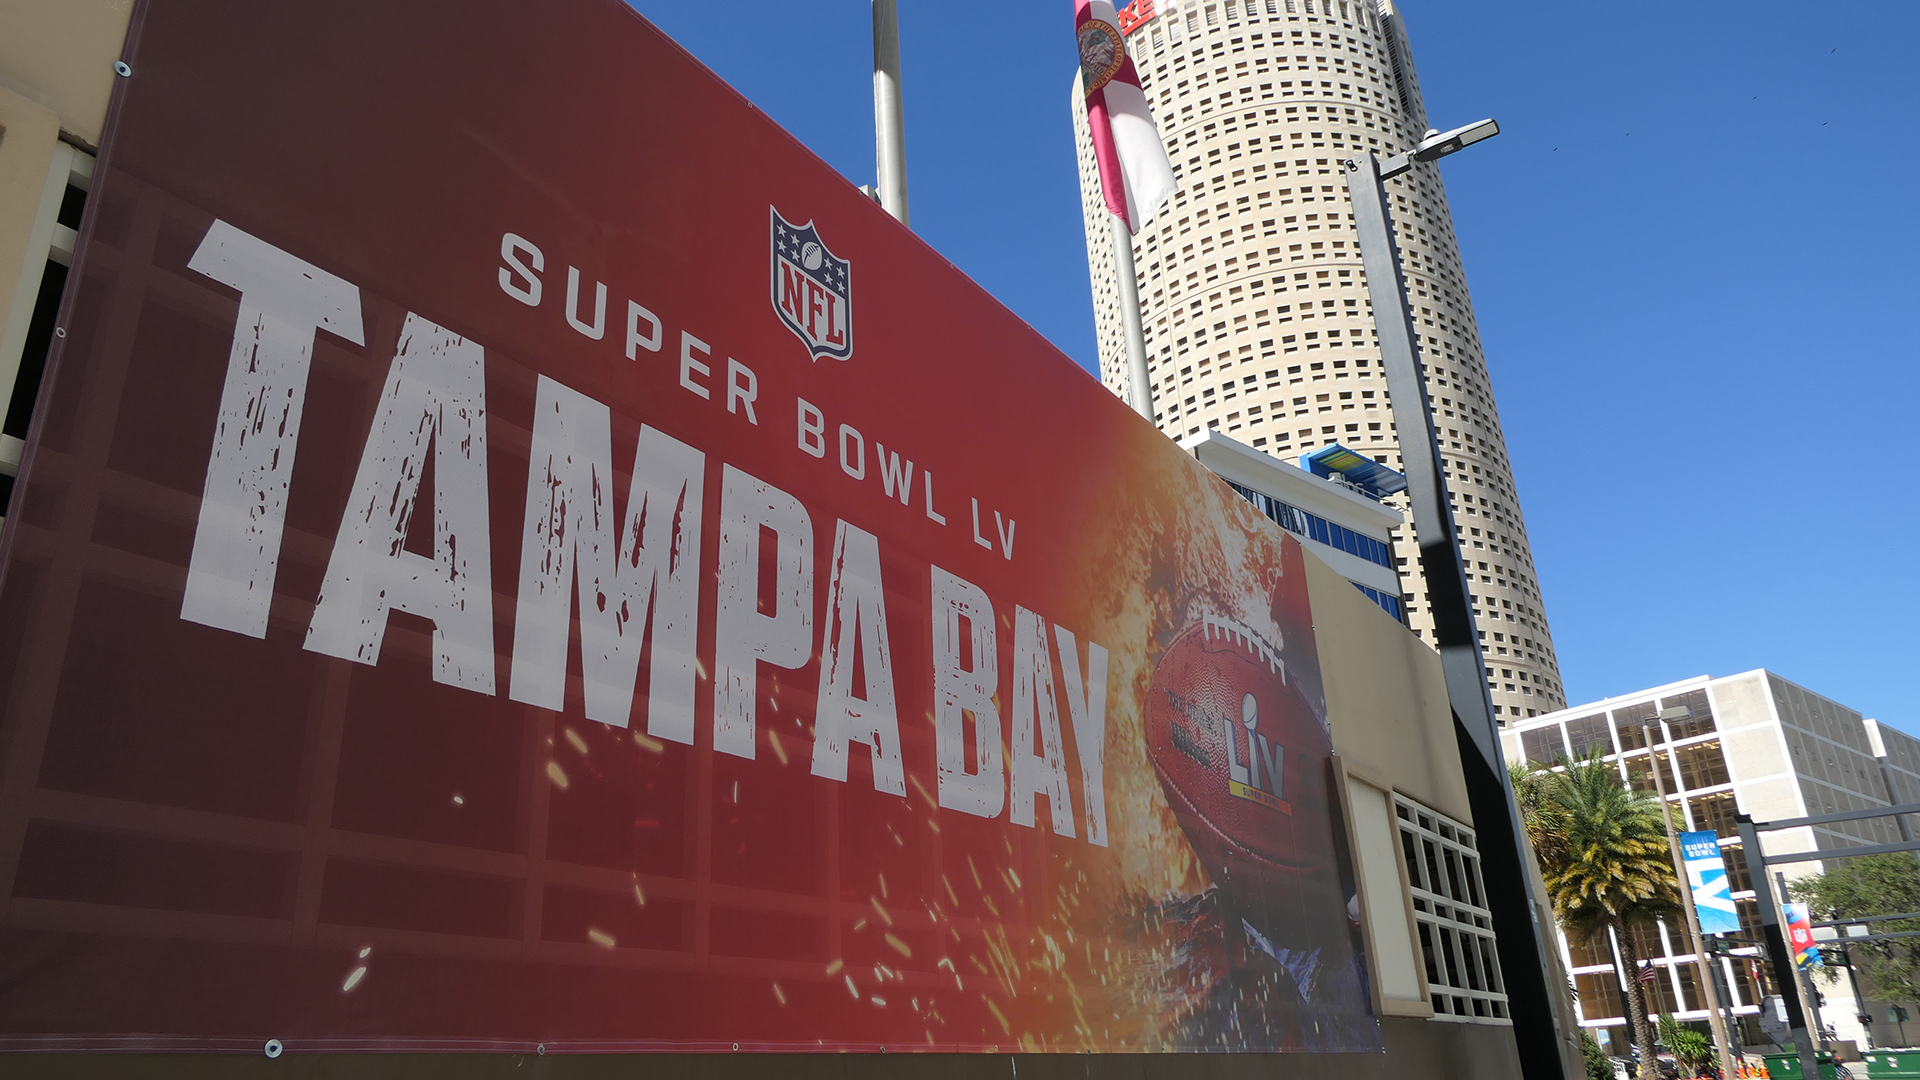 Picture of Super Bowl sign in Tampa